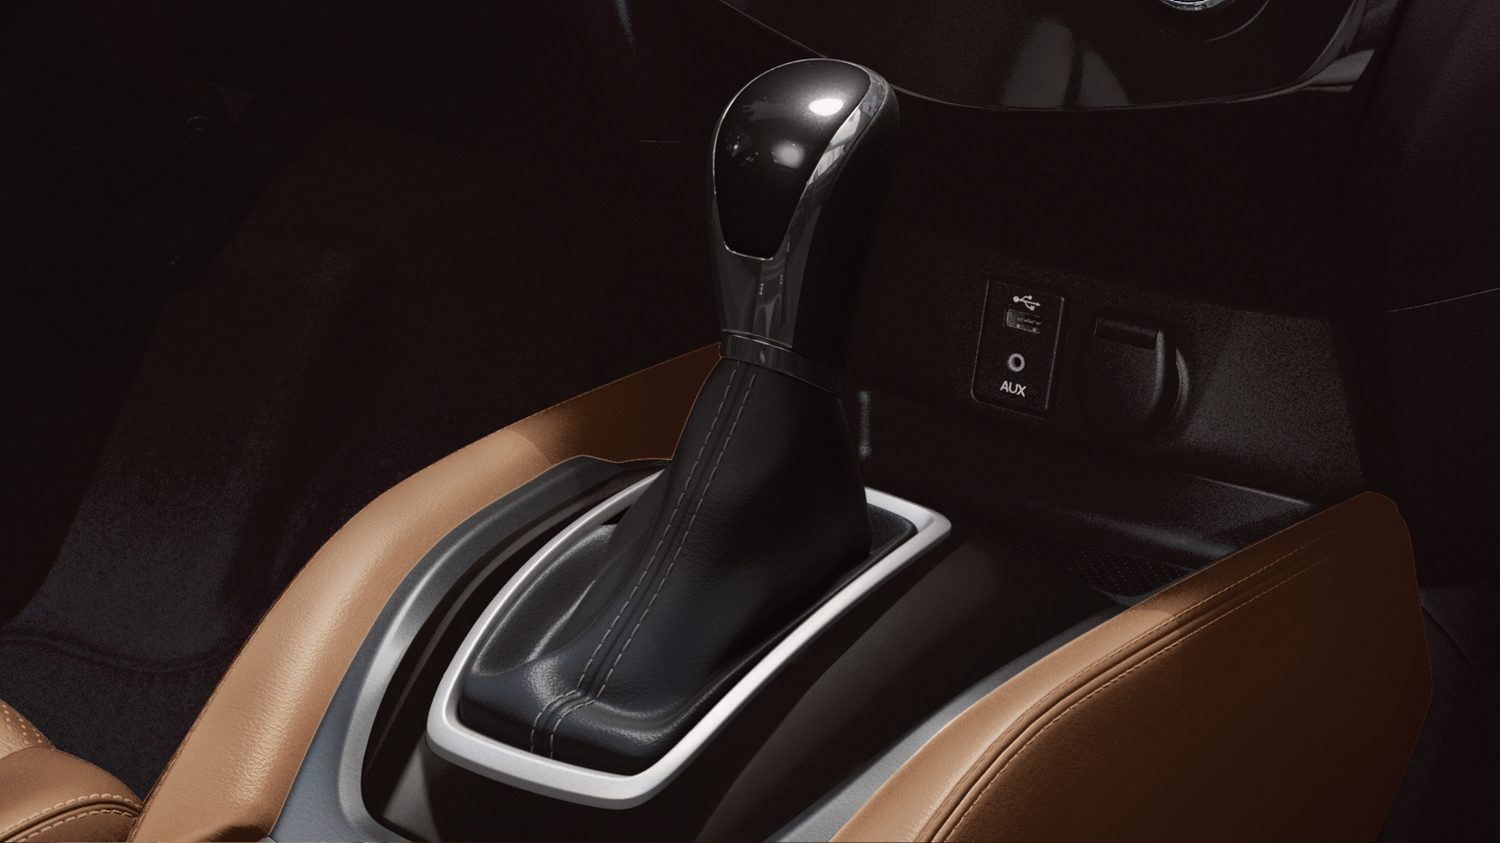 2018 NISSAN X-TRAIL tan interior gear stick